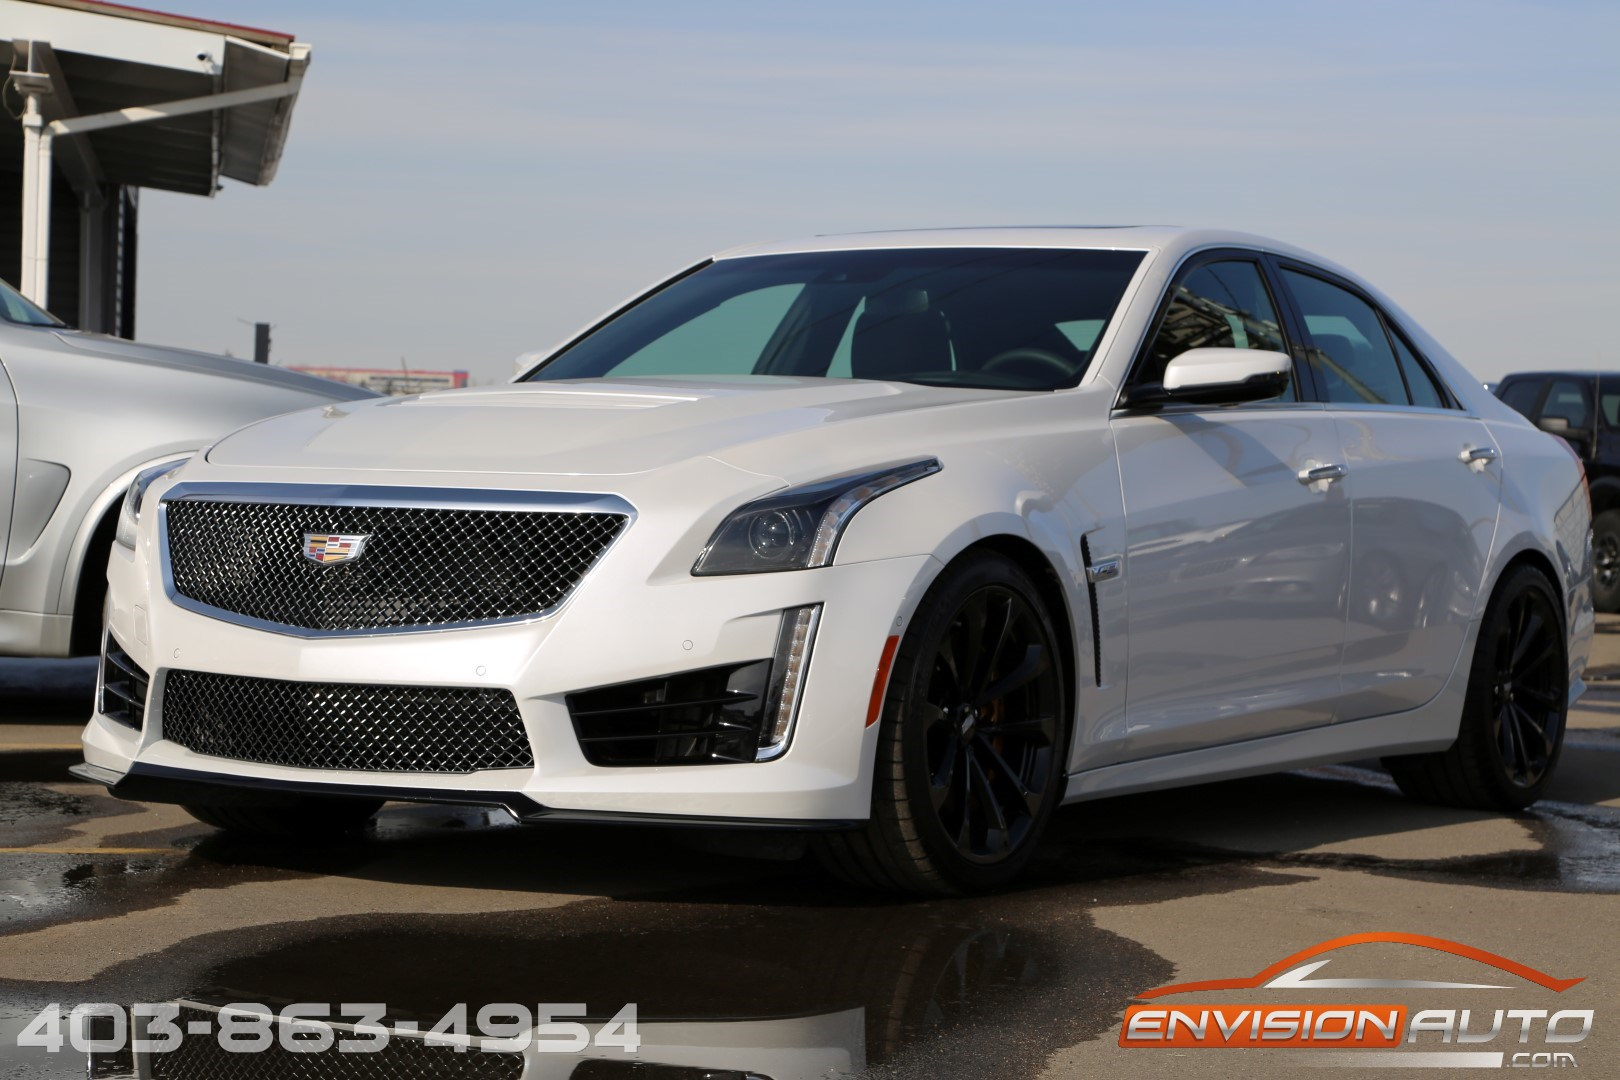 2017 cadillac cts v sedan luxury driver awareness 1 owner envision auto. Black Bedroom Furniture Sets. Home Design Ideas